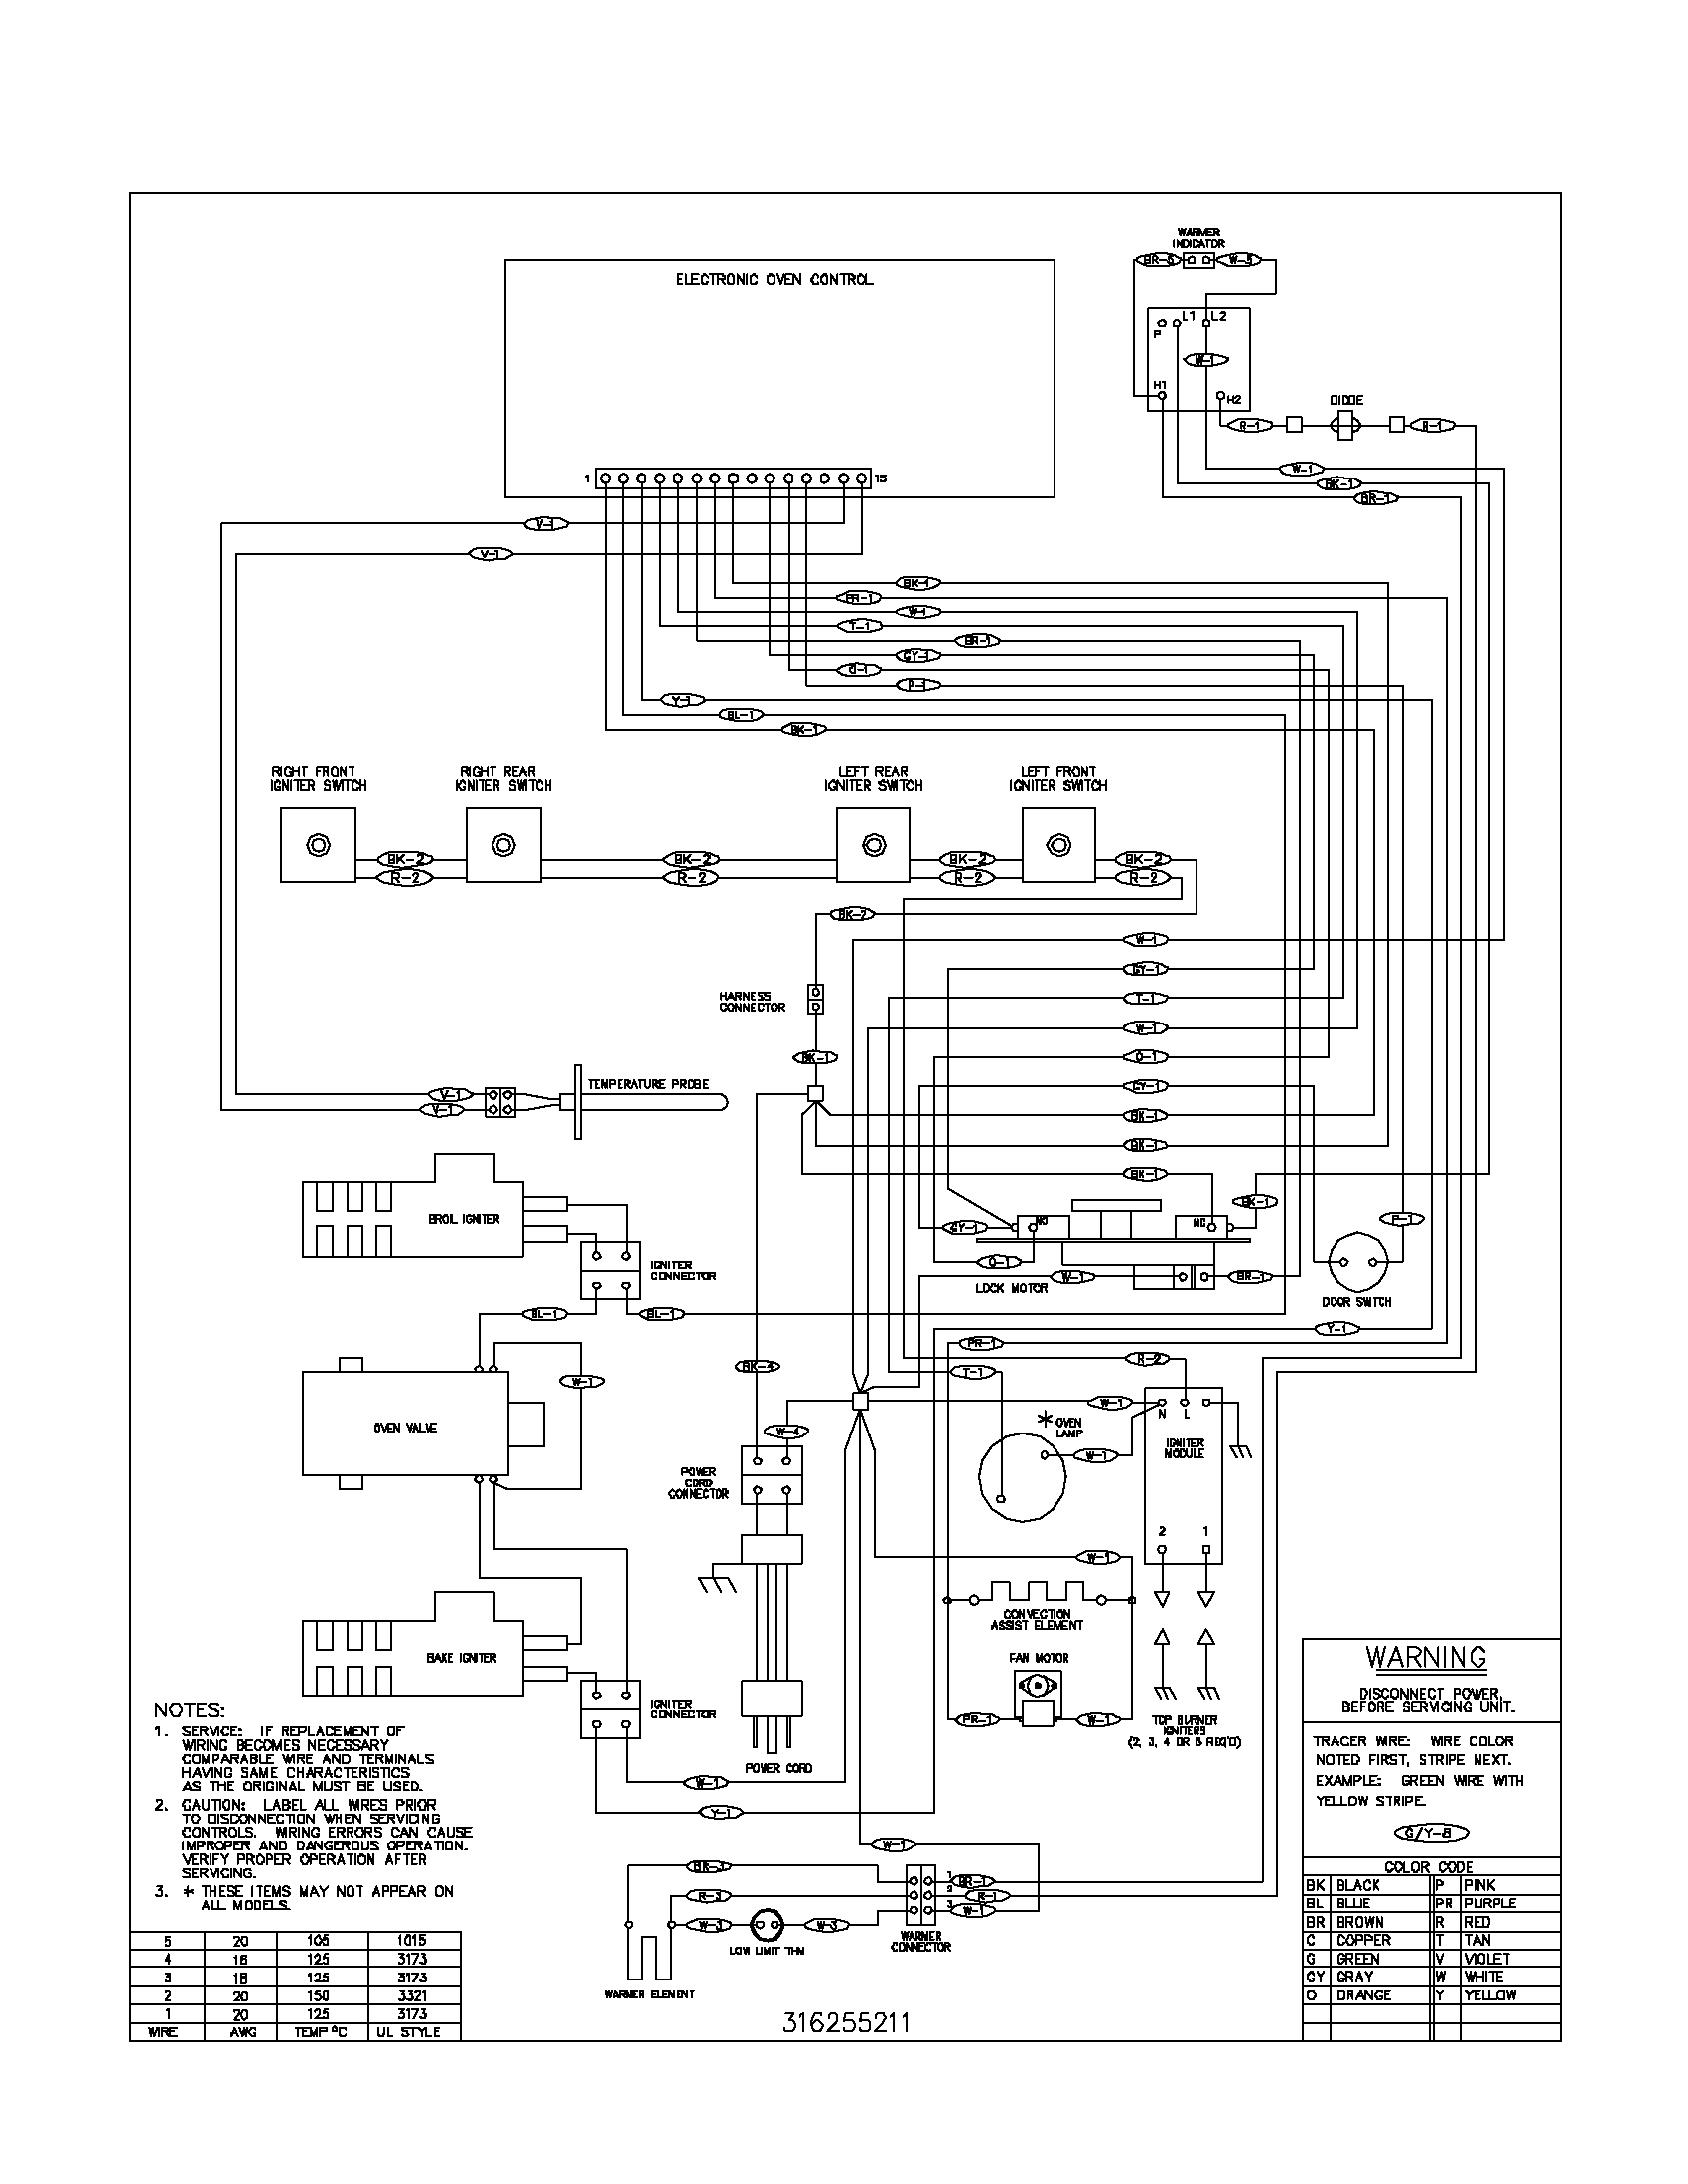 wiring diagram for electrolux dryer wiring image electrolux dryer wiring diagram wirdig on wiring diagram for electrolux dryer